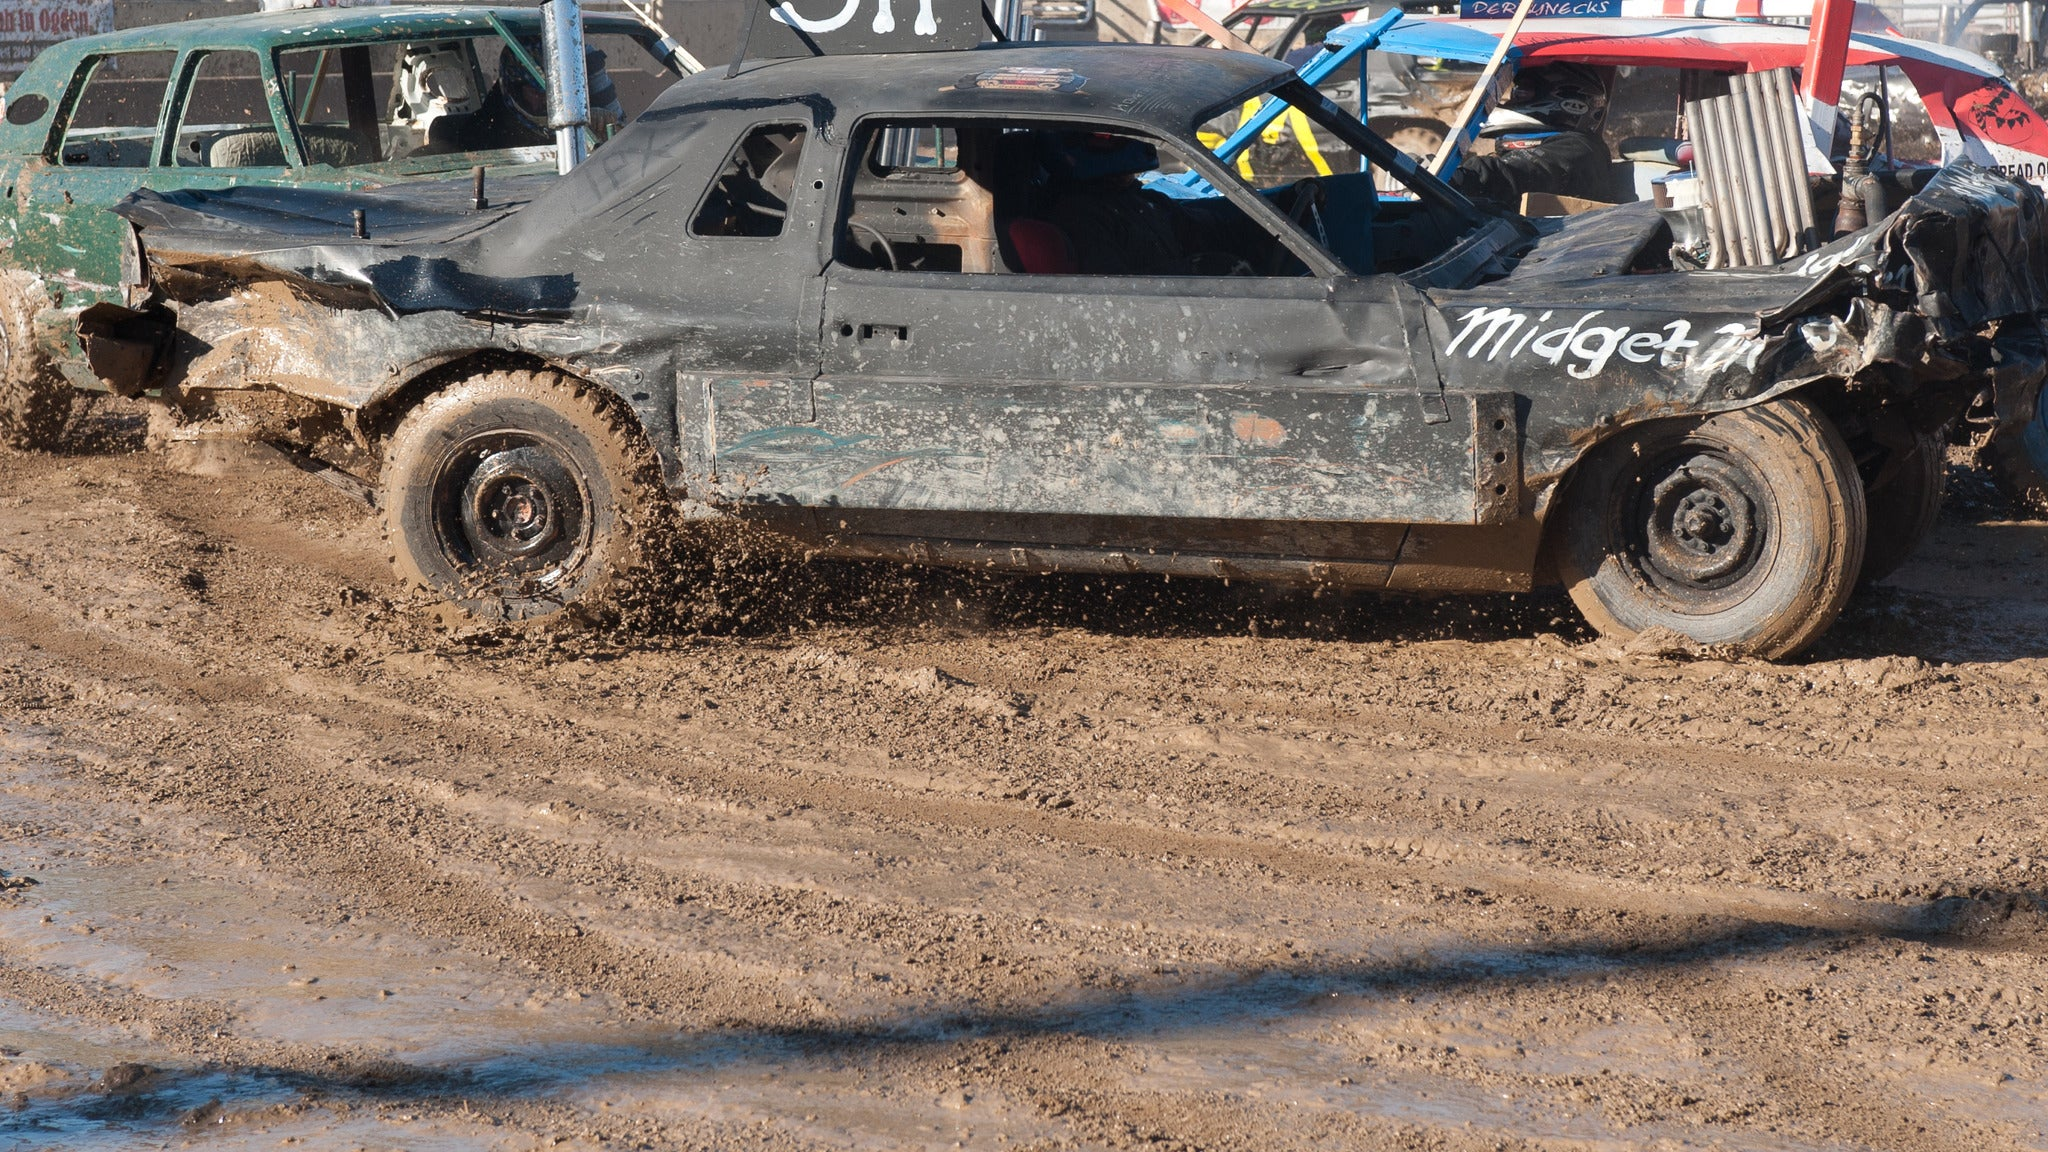 SORRY, THIS EVENT IS NO LONGER ACTIVE<br>Orange Crush Demolition Derby at OC Fair & Event Center - Costa Mesa, CA 92626